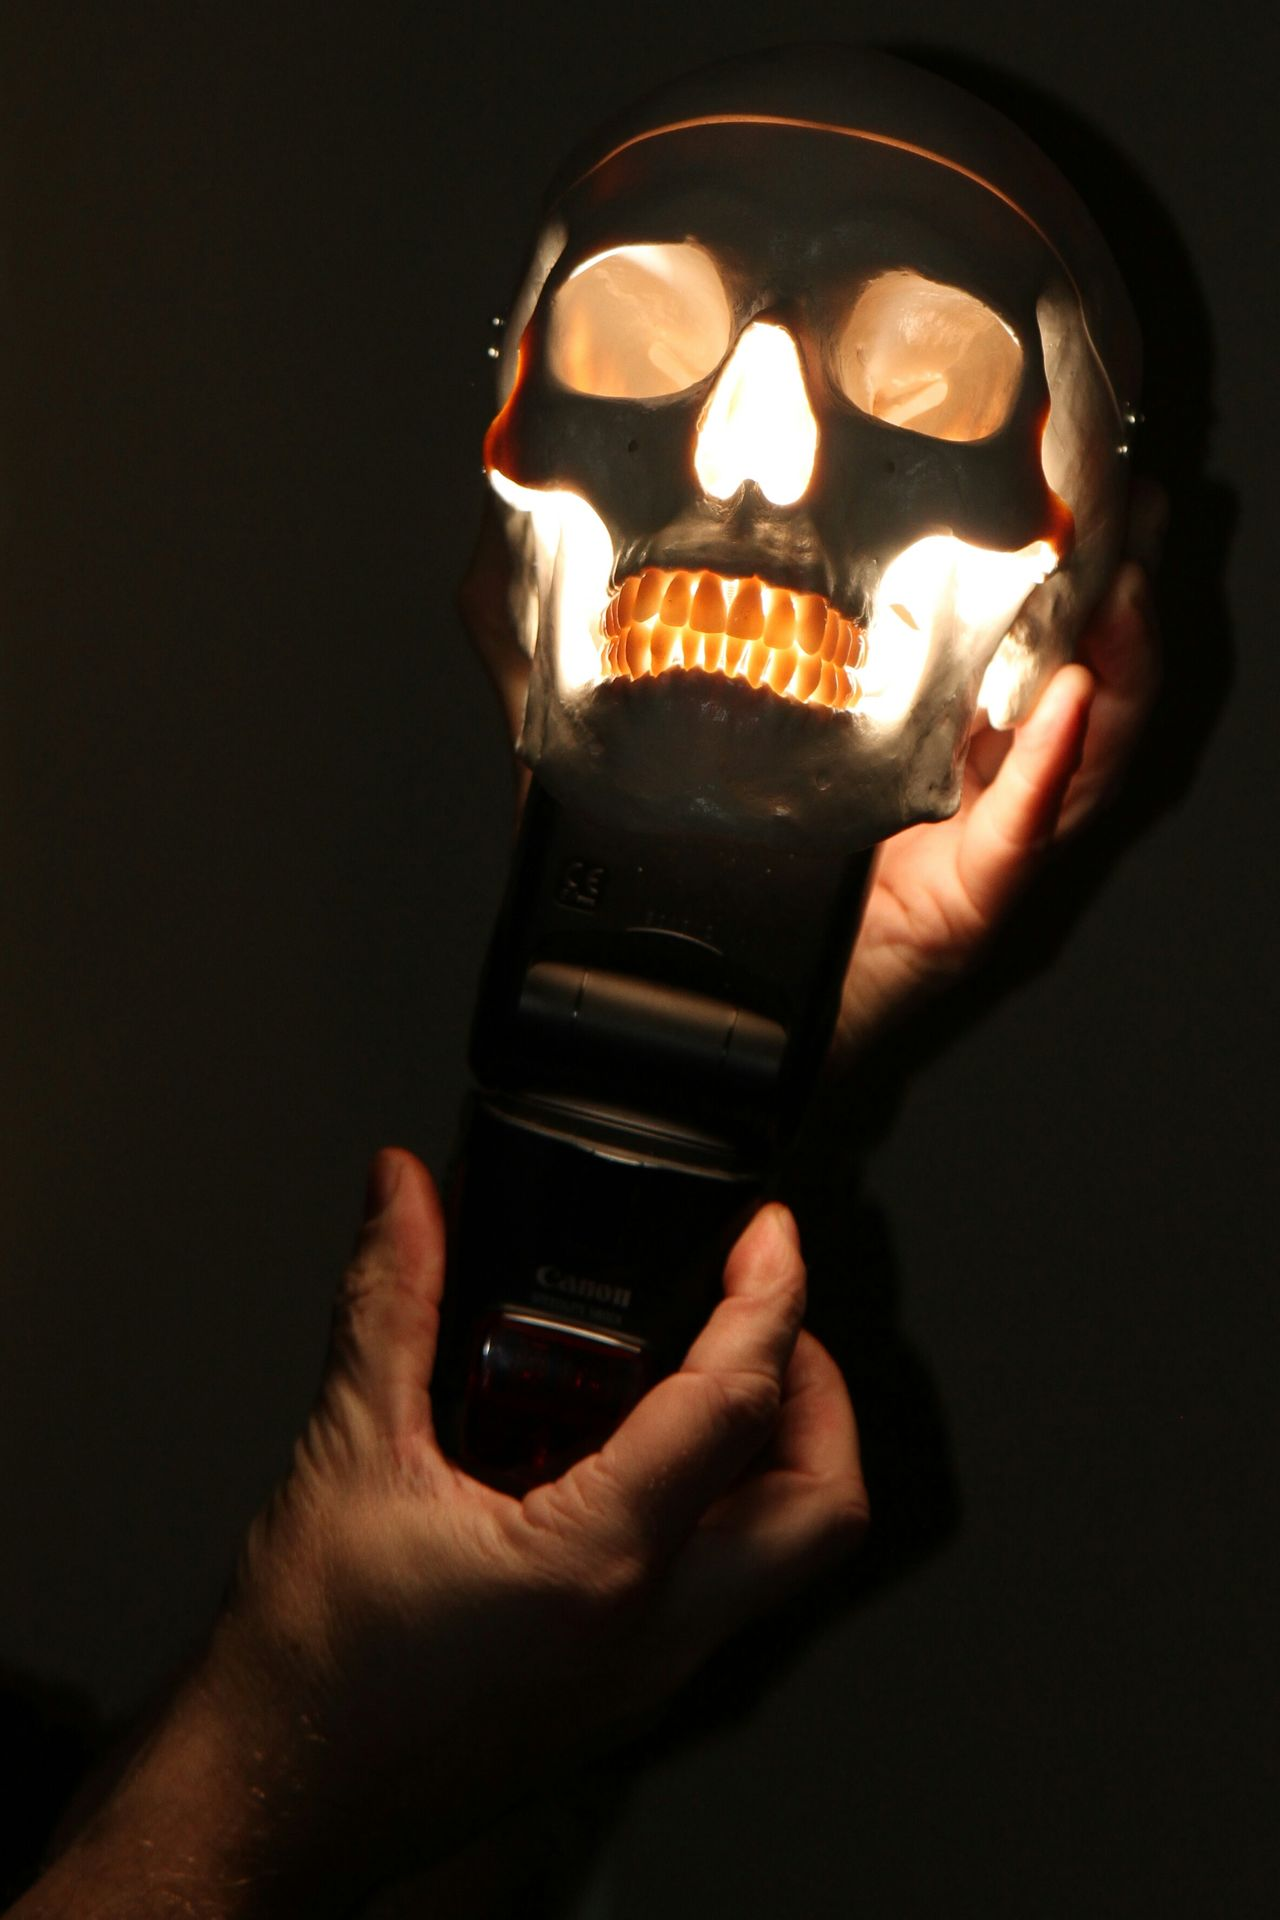 Black Background Close-up Fashion Focus On Foreground Happy Halloween Hobbies Holding Human Body Part Human Finger Human Hand Indoors  Lifestyles Men Music Part Of Real People Serious Skull Studio Shot Technology Women